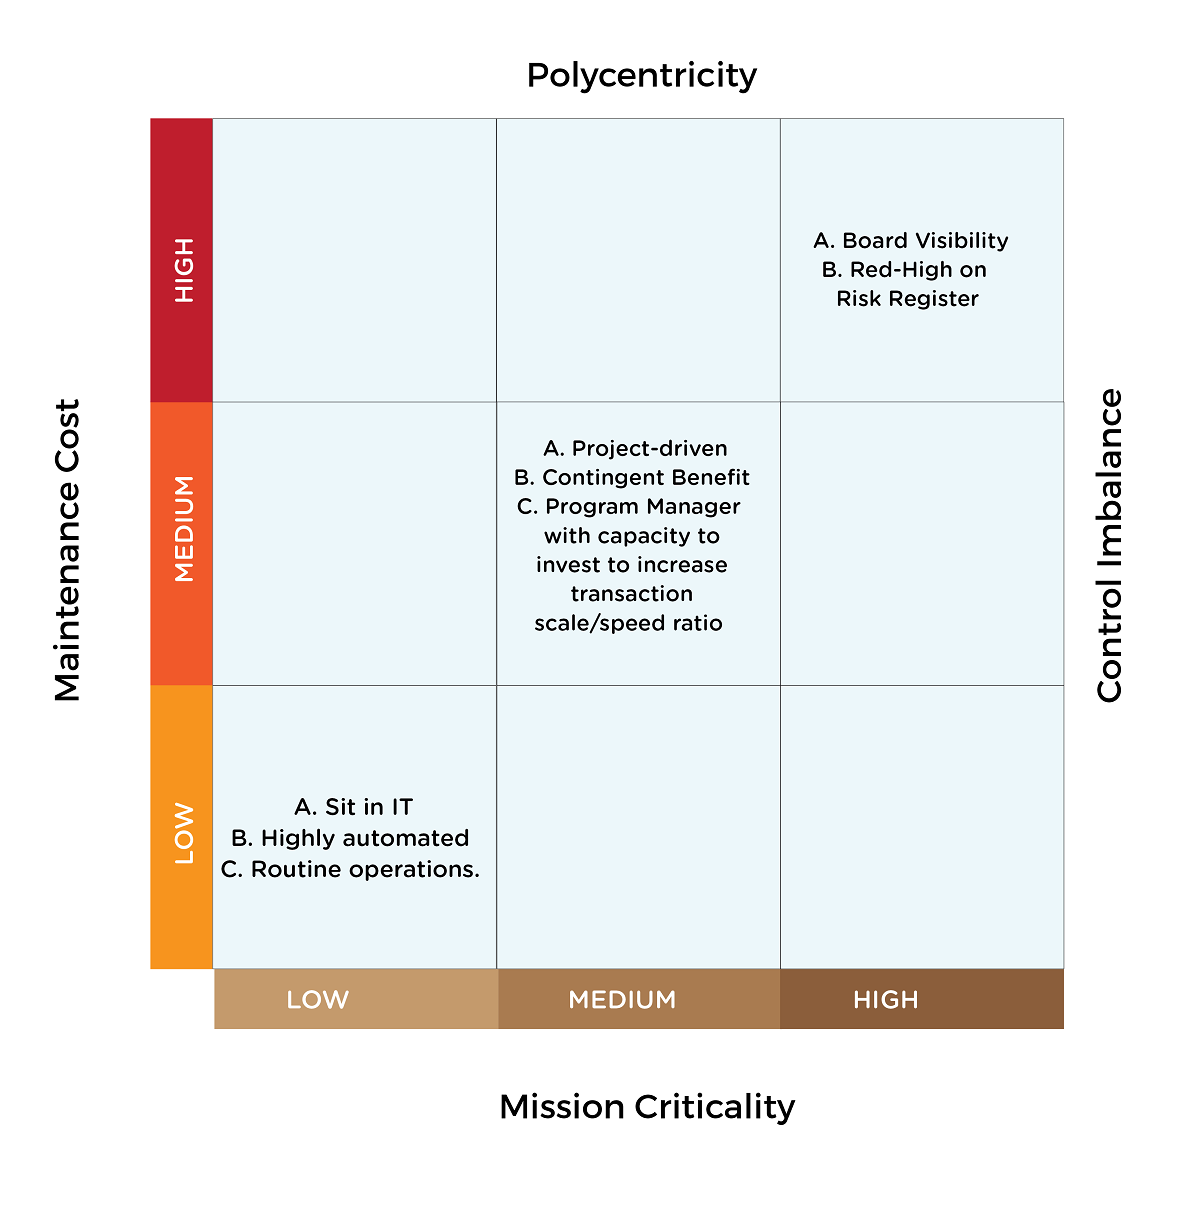 Matrix of mission criticality and maintenance cost